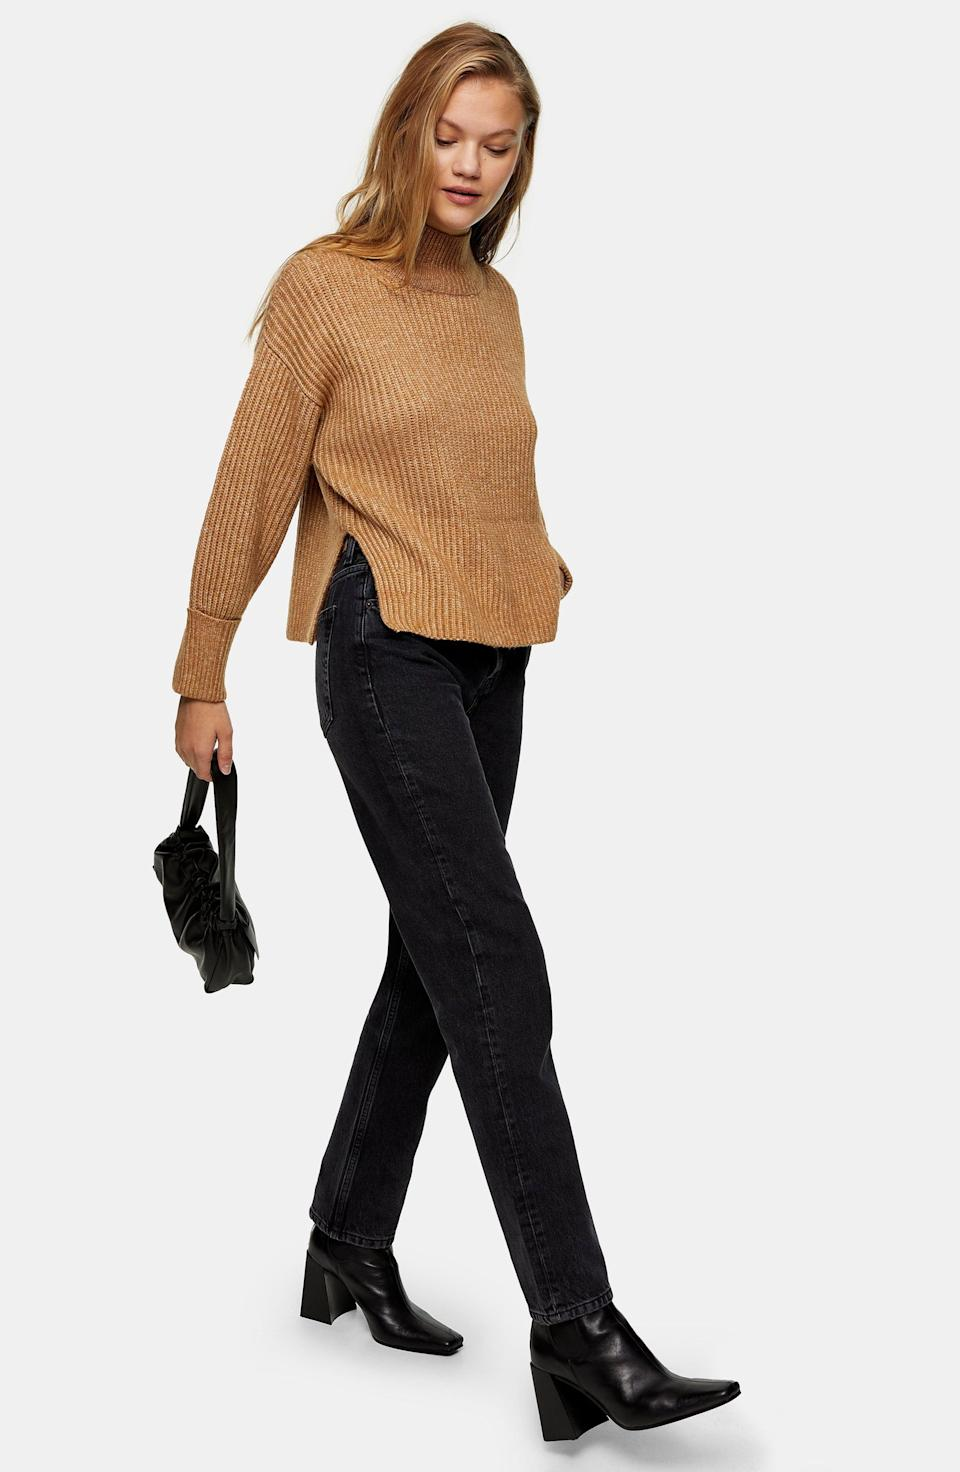 """<p><strong>TOPSHOP</strong></p><p>nordstrom.com</p><p><strong>$39.00</strong></p><p><a href=""""https://go.redirectingat.com?id=74968X1596630&url=https%3A%2F%2Fwww.nordstrom.com%2Fs%2Ftopshop-mock-neck-crop-sweater%2F5724824&sref=https%3A%2F%2Fwww.marieclaire.com%2Ffashion%2Fg35090742%2Fnordstrom-half-yearly-sale-2020%2F"""" rel=""""nofollow noopener"""" target=""""_blank"""" data-ylk=""""slk:Shop Now"""" class=""""link rapid-noclick-resp"""">Shop Now</a></p>"""